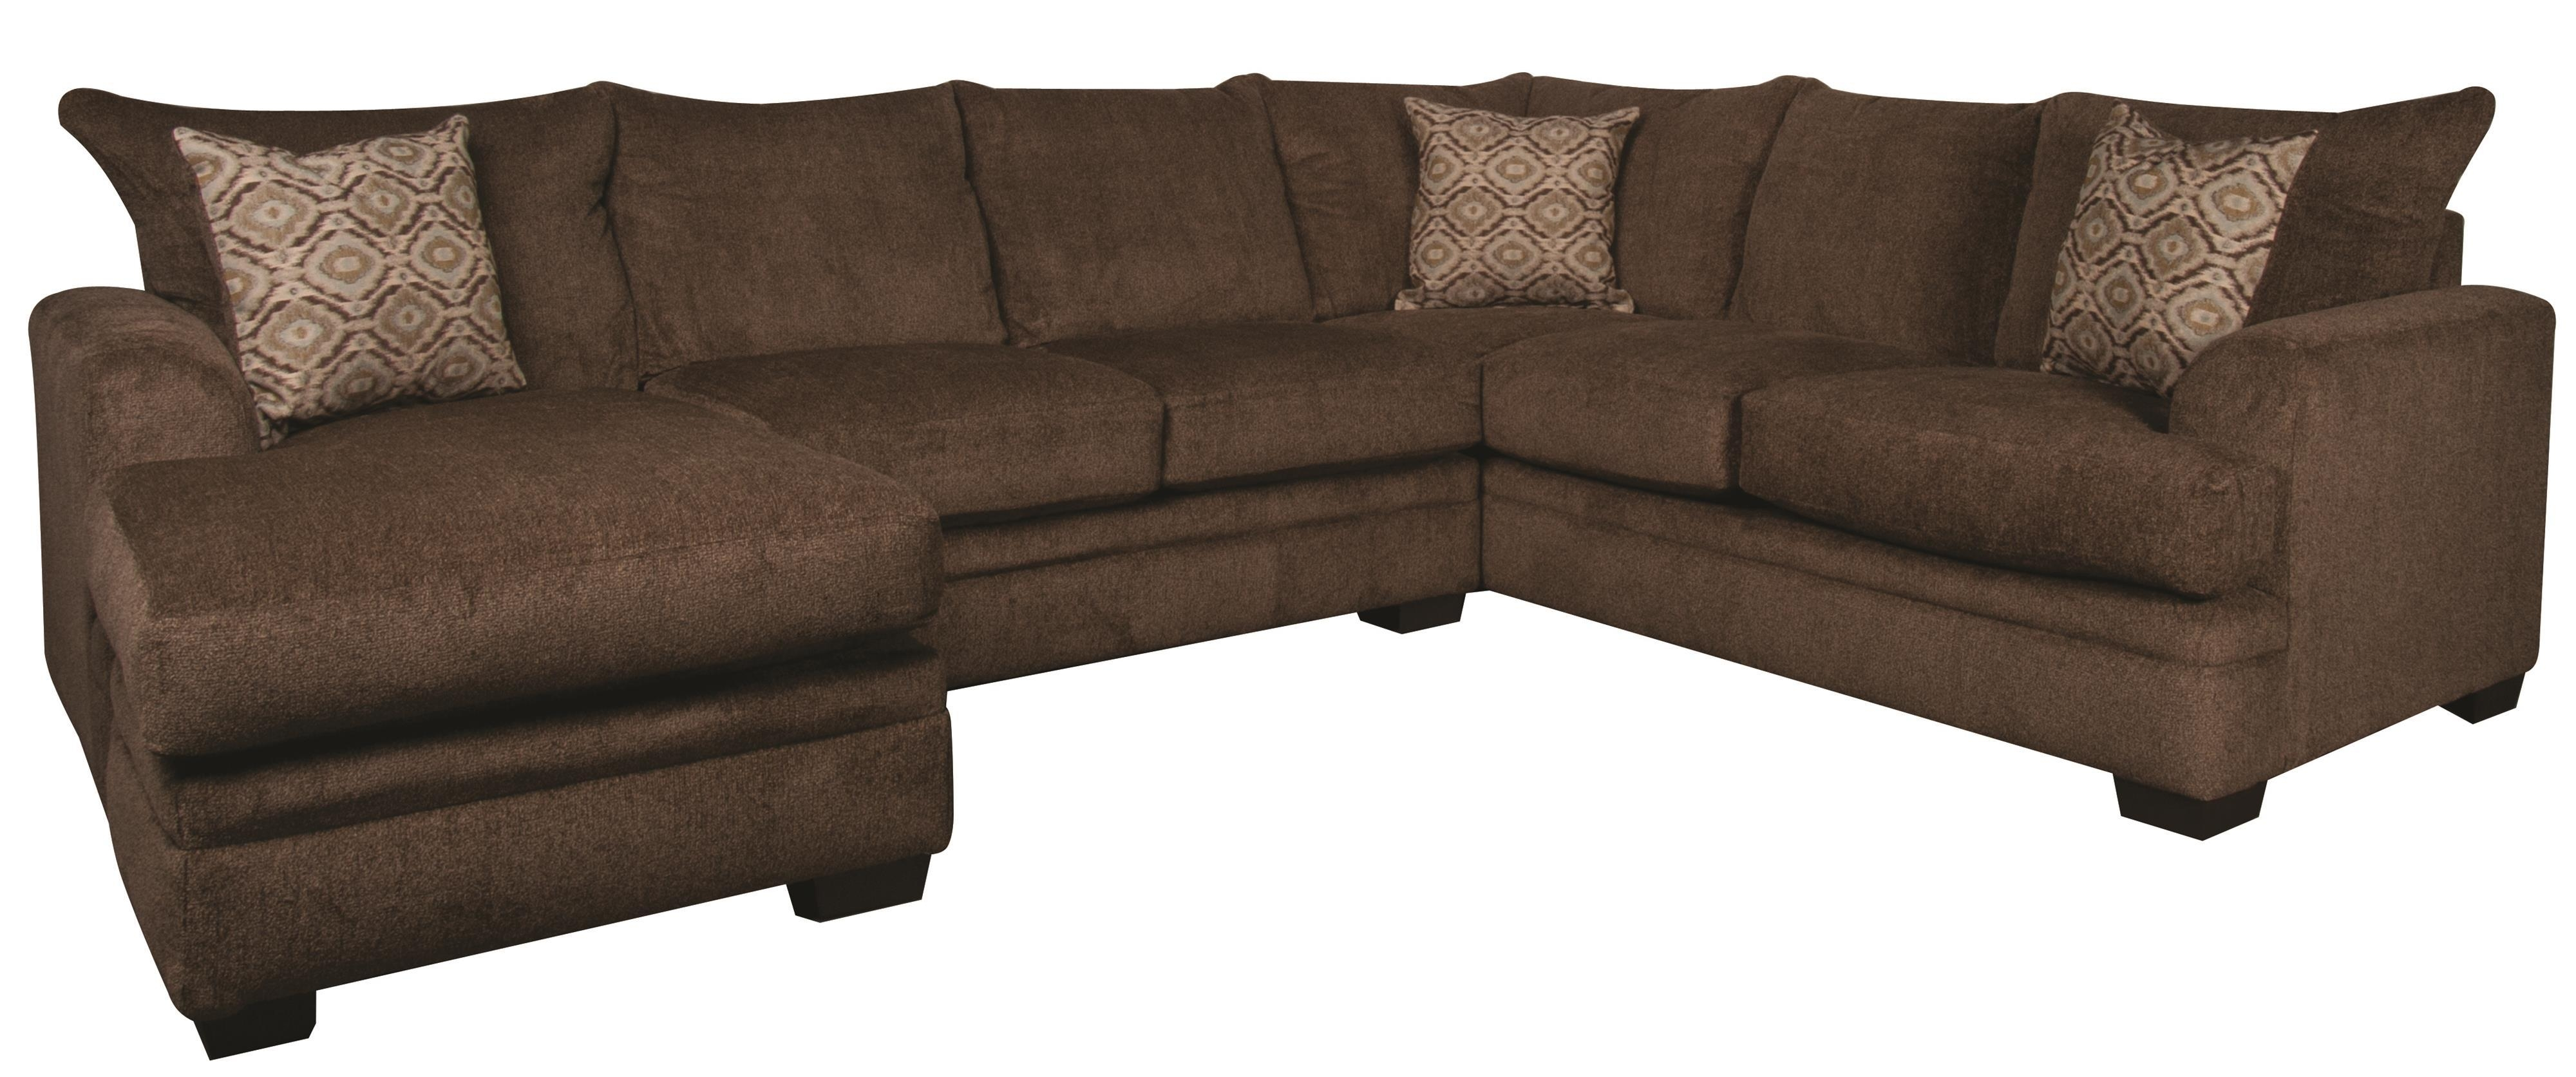 Sofas : Wonderful Small Sectional Sofa Bed Tan Leather Sectional With Small 2 Piece Sectional Sofas (View 19 of 23)